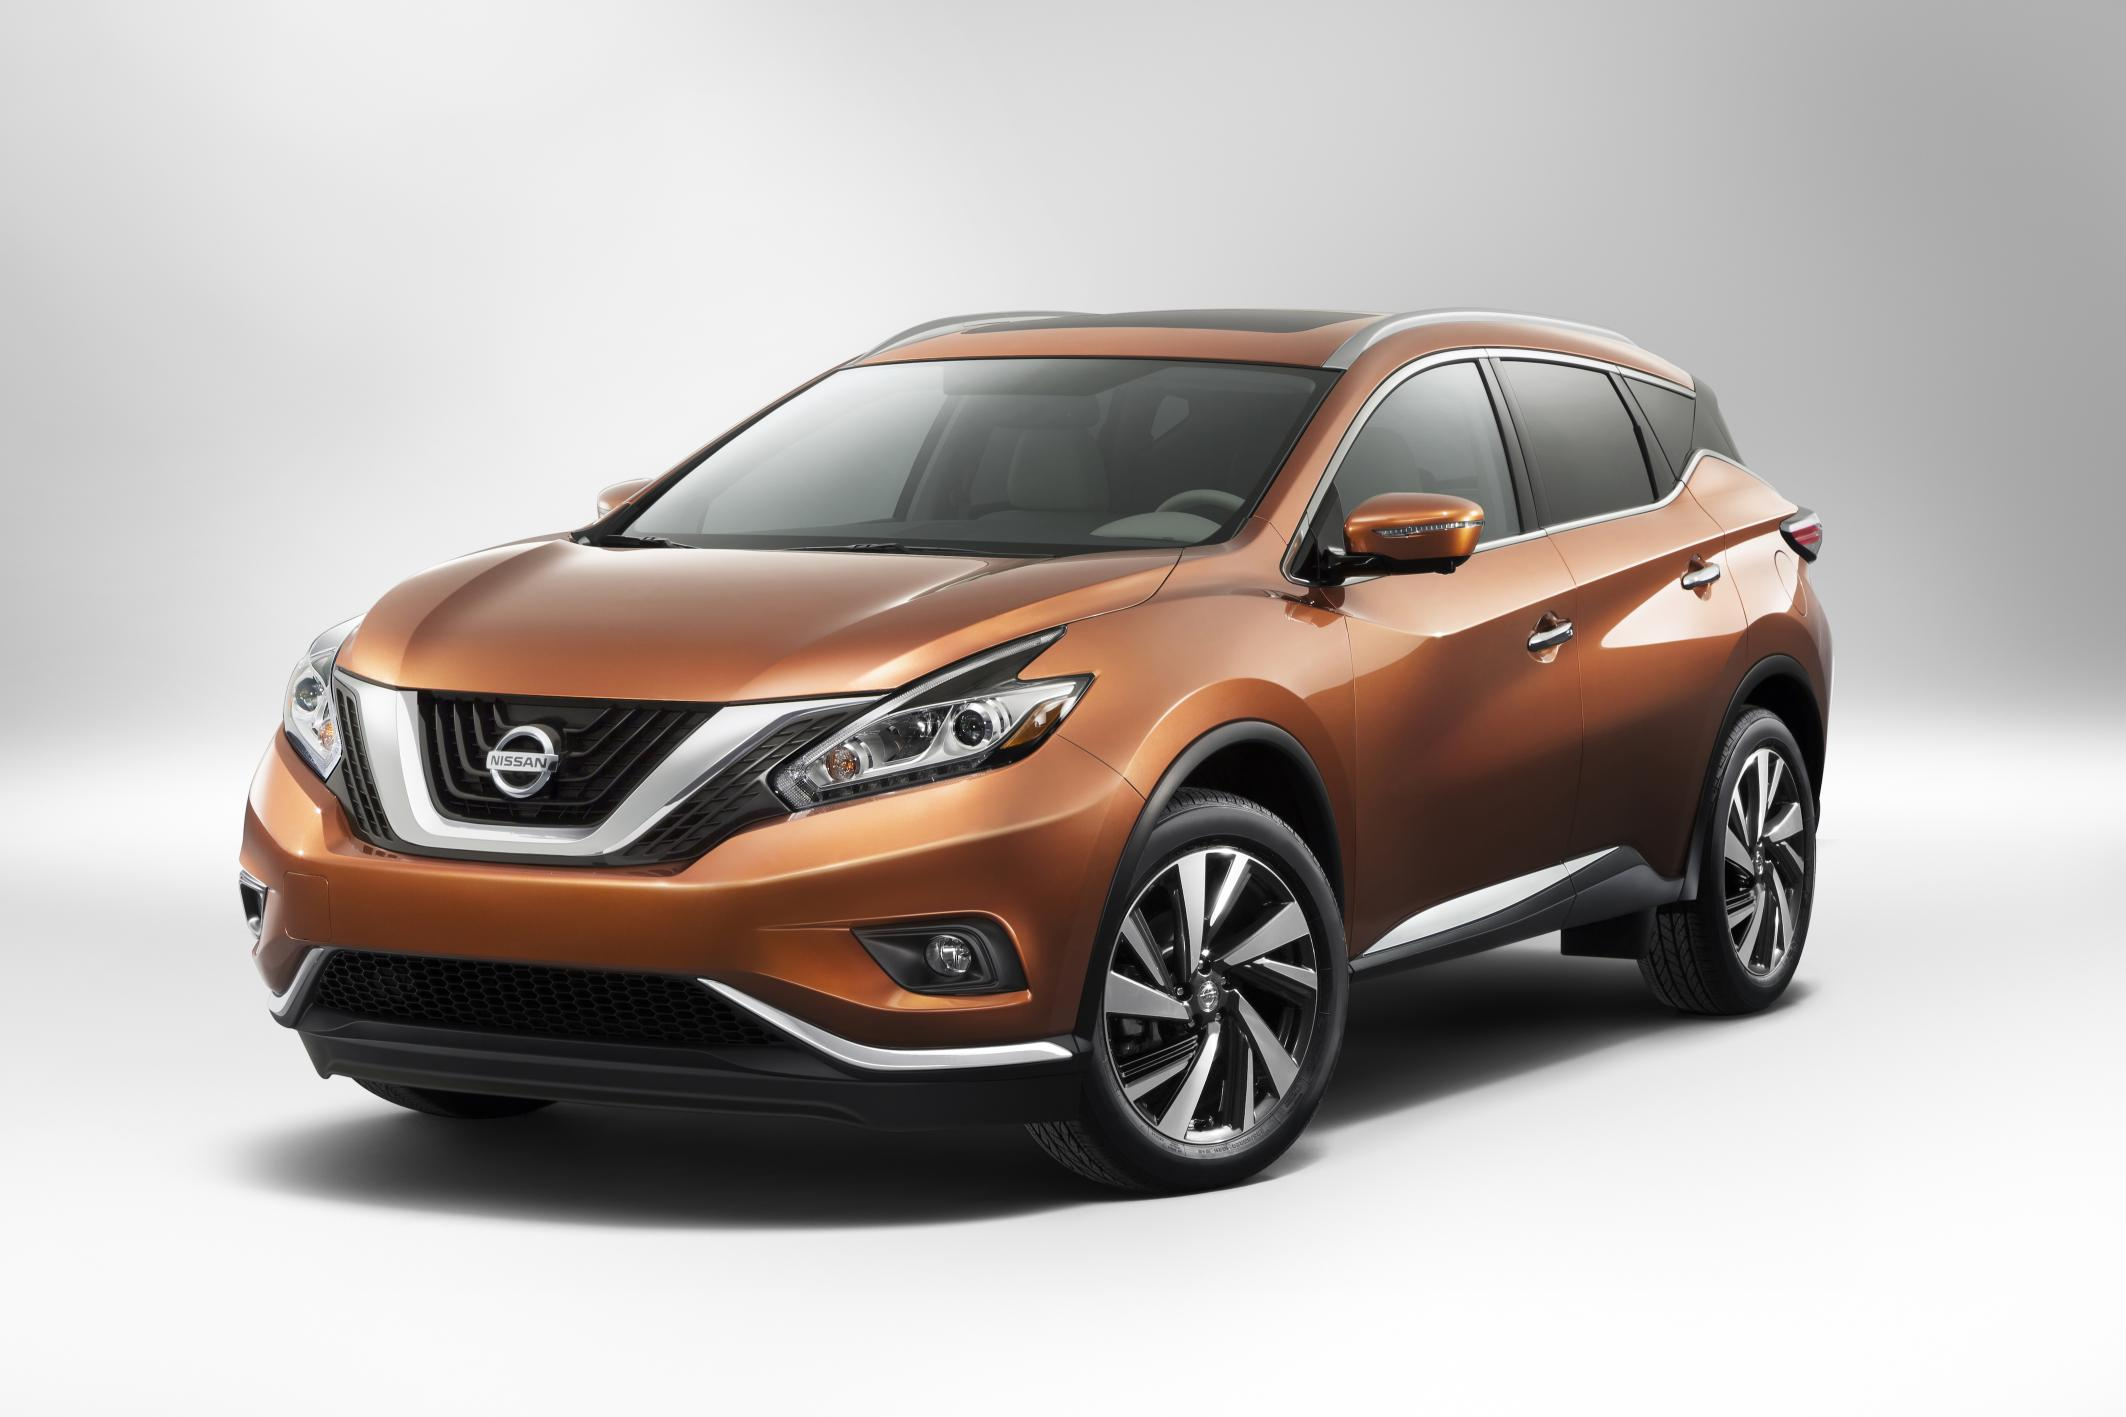 New 2015 Nissan Murano SUV unveiled